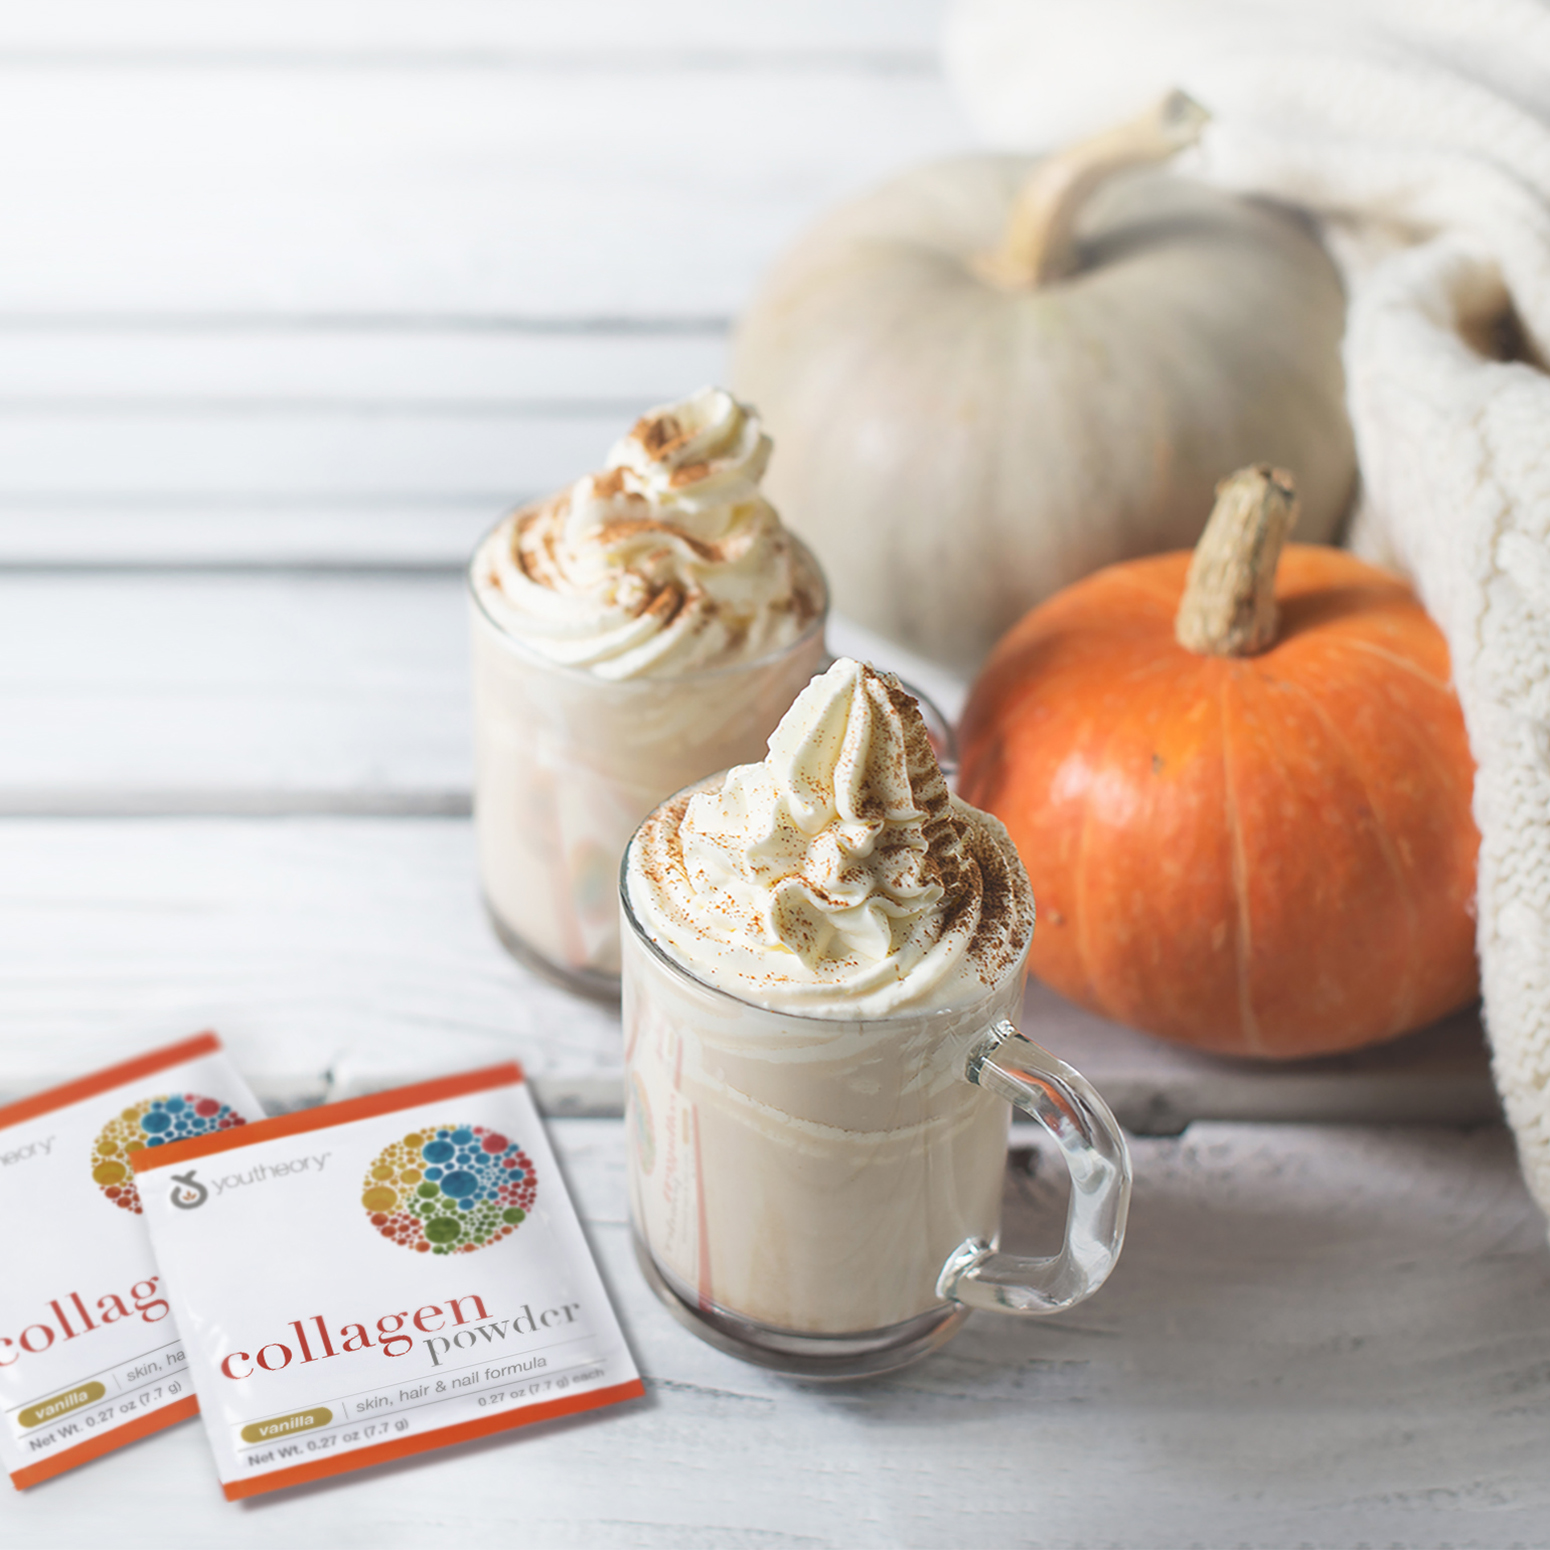 Collagen Powder packets next to Pumpkins spice latte with pumpkins and white cozy sweater over white wood texture.